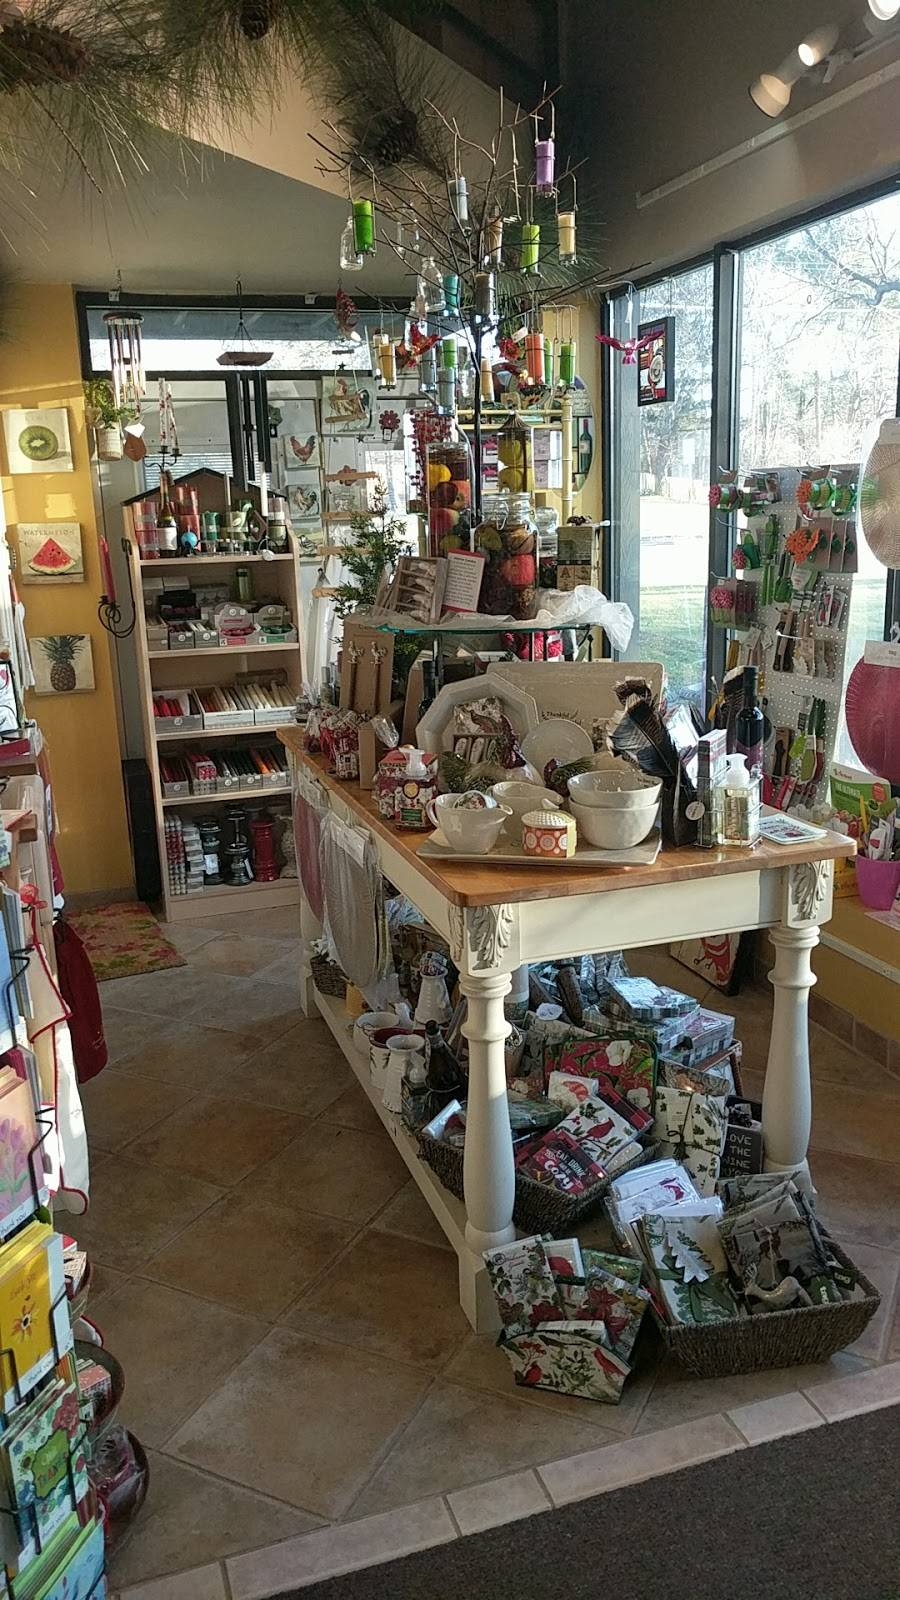 Hummingbird Floral & Gifts - florist  | Photo 1 of 9 | Address: 4001 Rice St, Shoreview, MN 55126, USA | Phone: (651) 486-0403